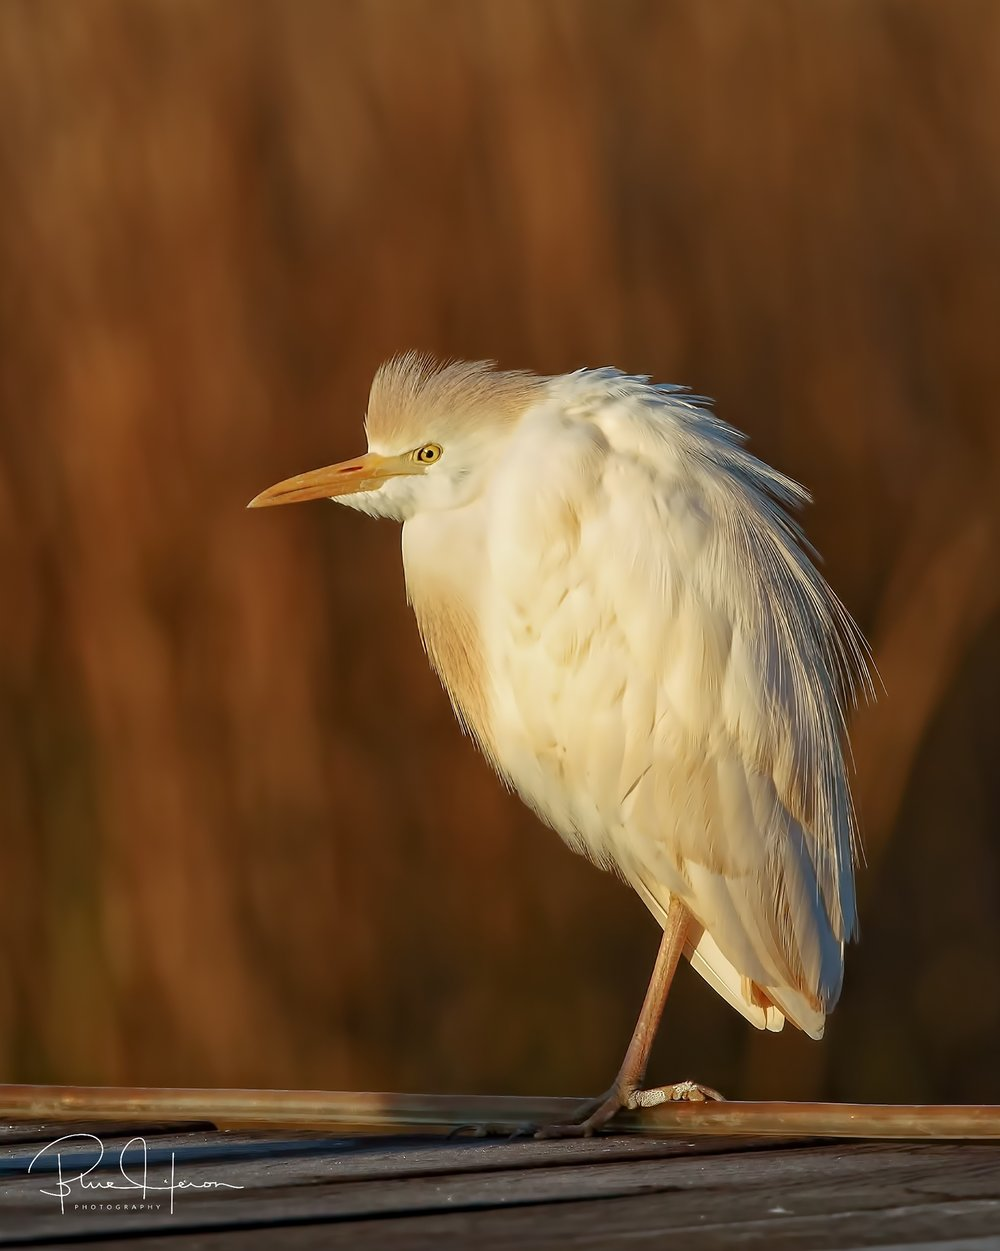 Cattle Egrets are year round residents but rarely stop by the dock.